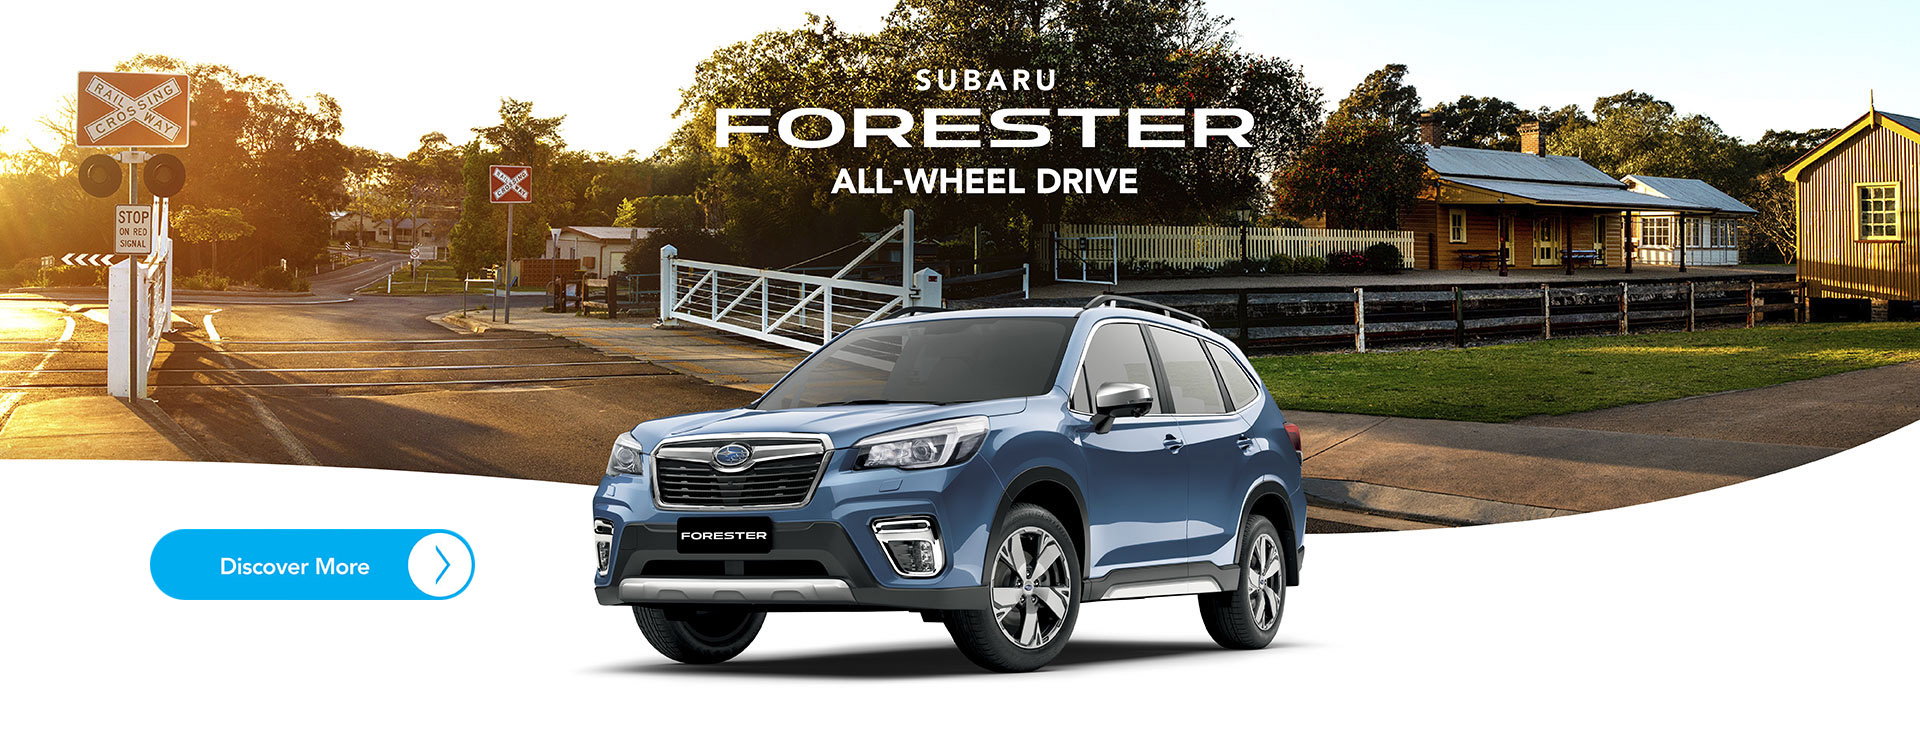 New Subaru Forester, including Hybrid e-Boxer, now available at Trinity Subaru, Cairns. Test Drive Today!